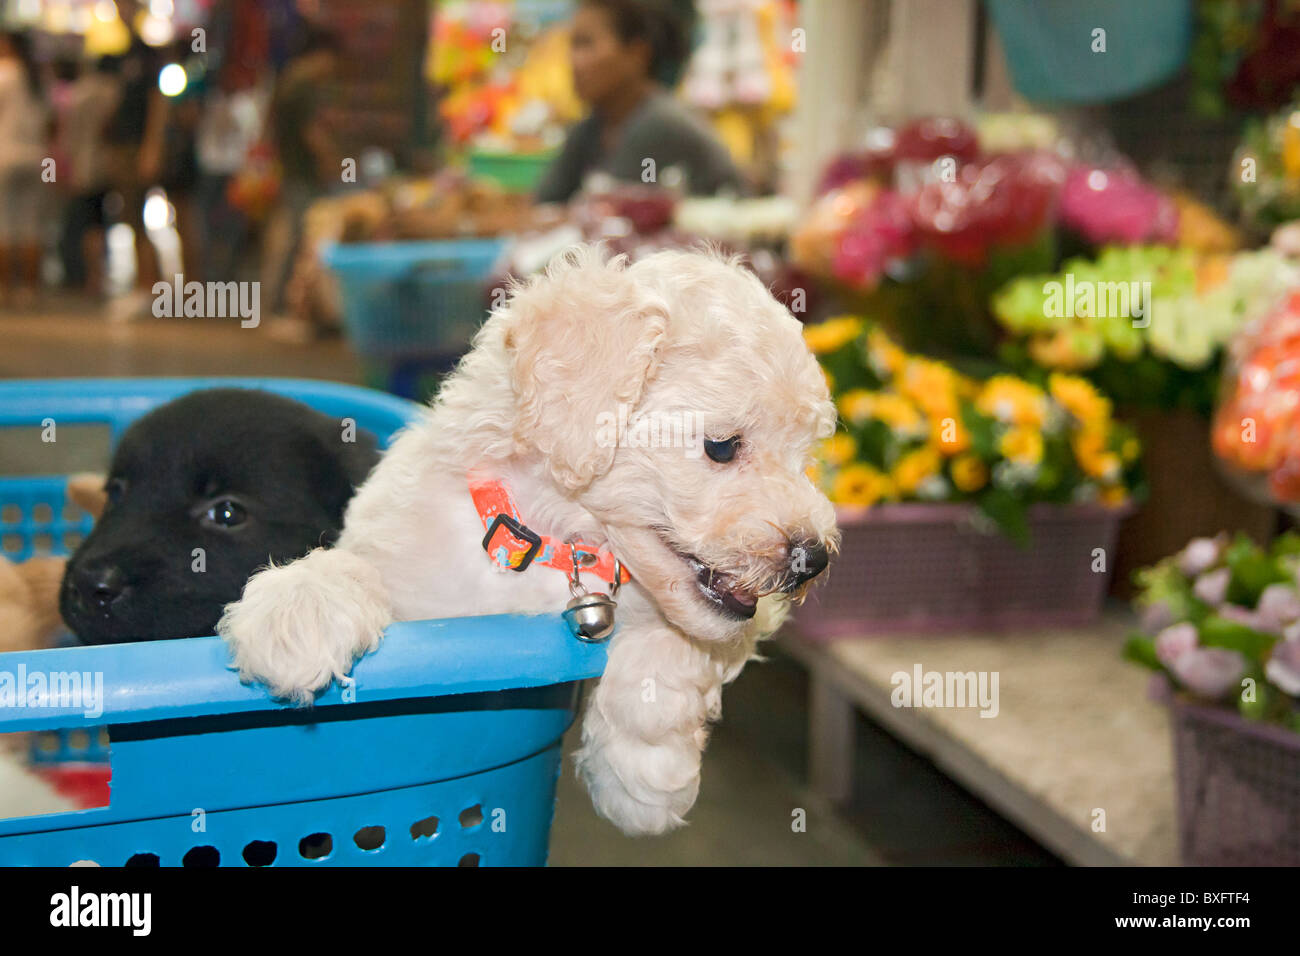 Puppies for sale at Chatuchak Weekend Market, Bangkok, Thailand. - Stock Image